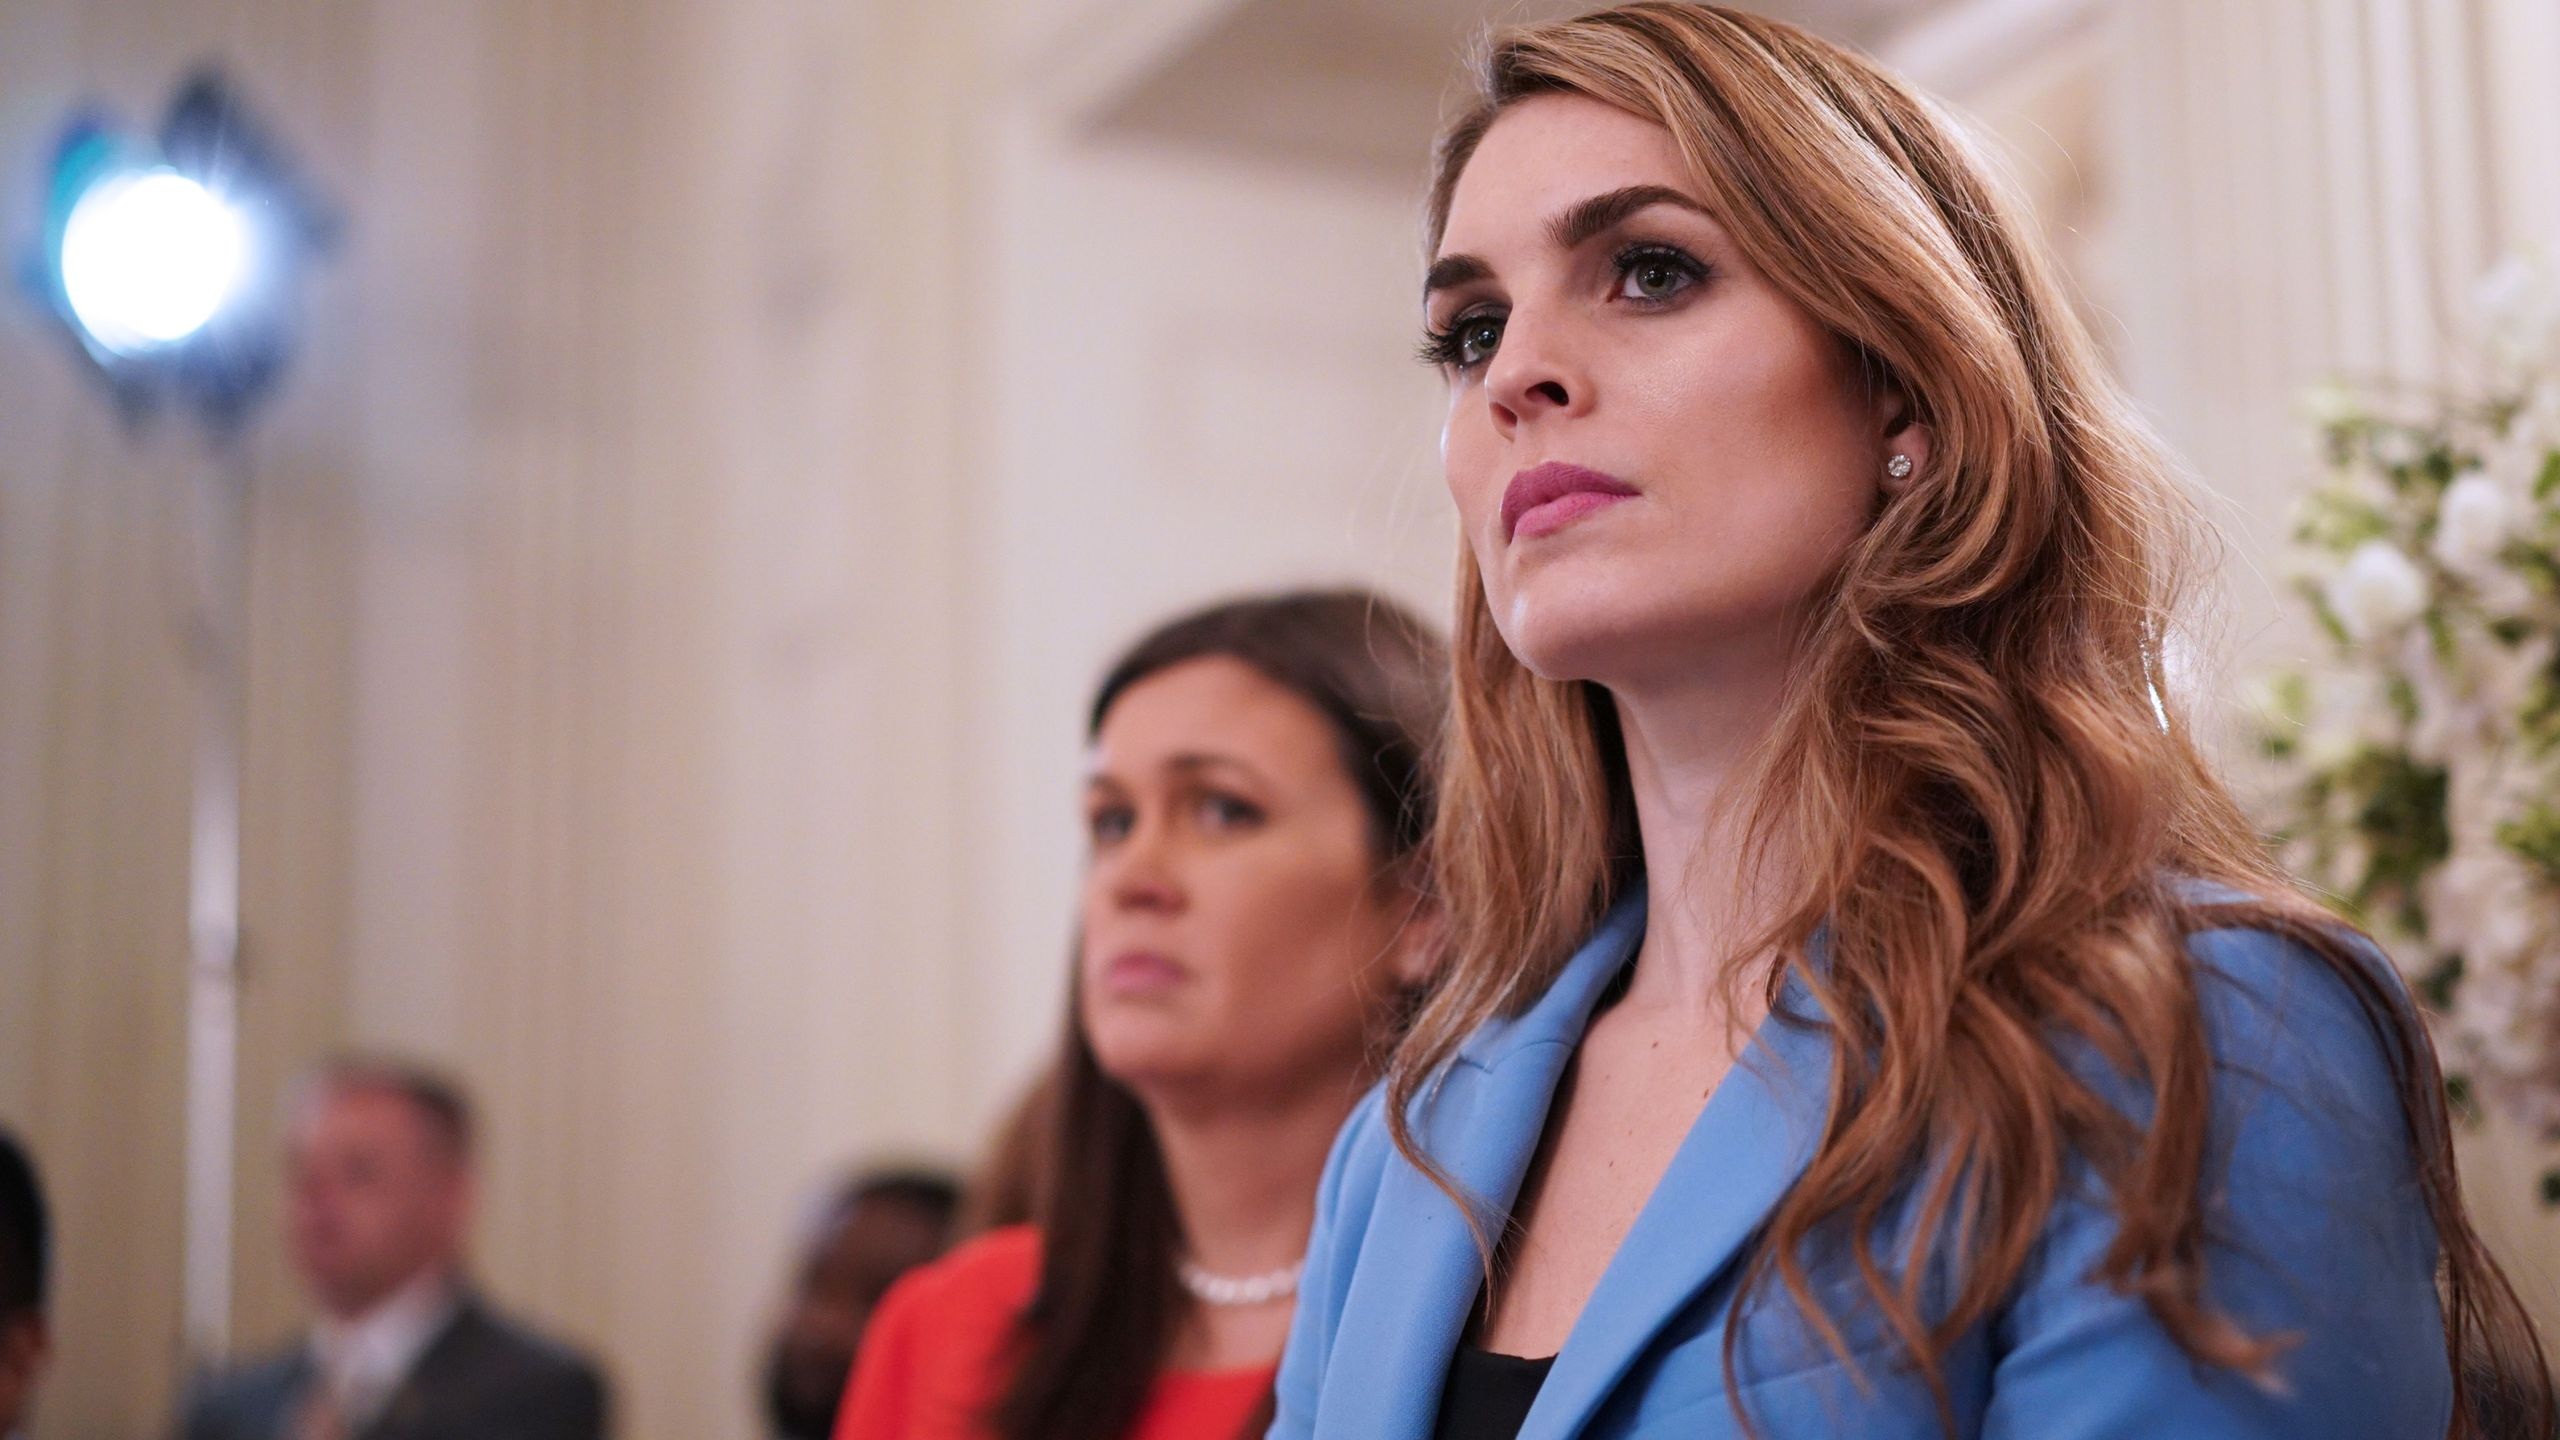 White House Communications Director Hope Hicks watches as Trump takes part in a listening session on gun violence with teachers and students in the State Dining Room of the White House on February 21, 2018. (Credit: MANDEL NGAN/AFP/Getty Images)